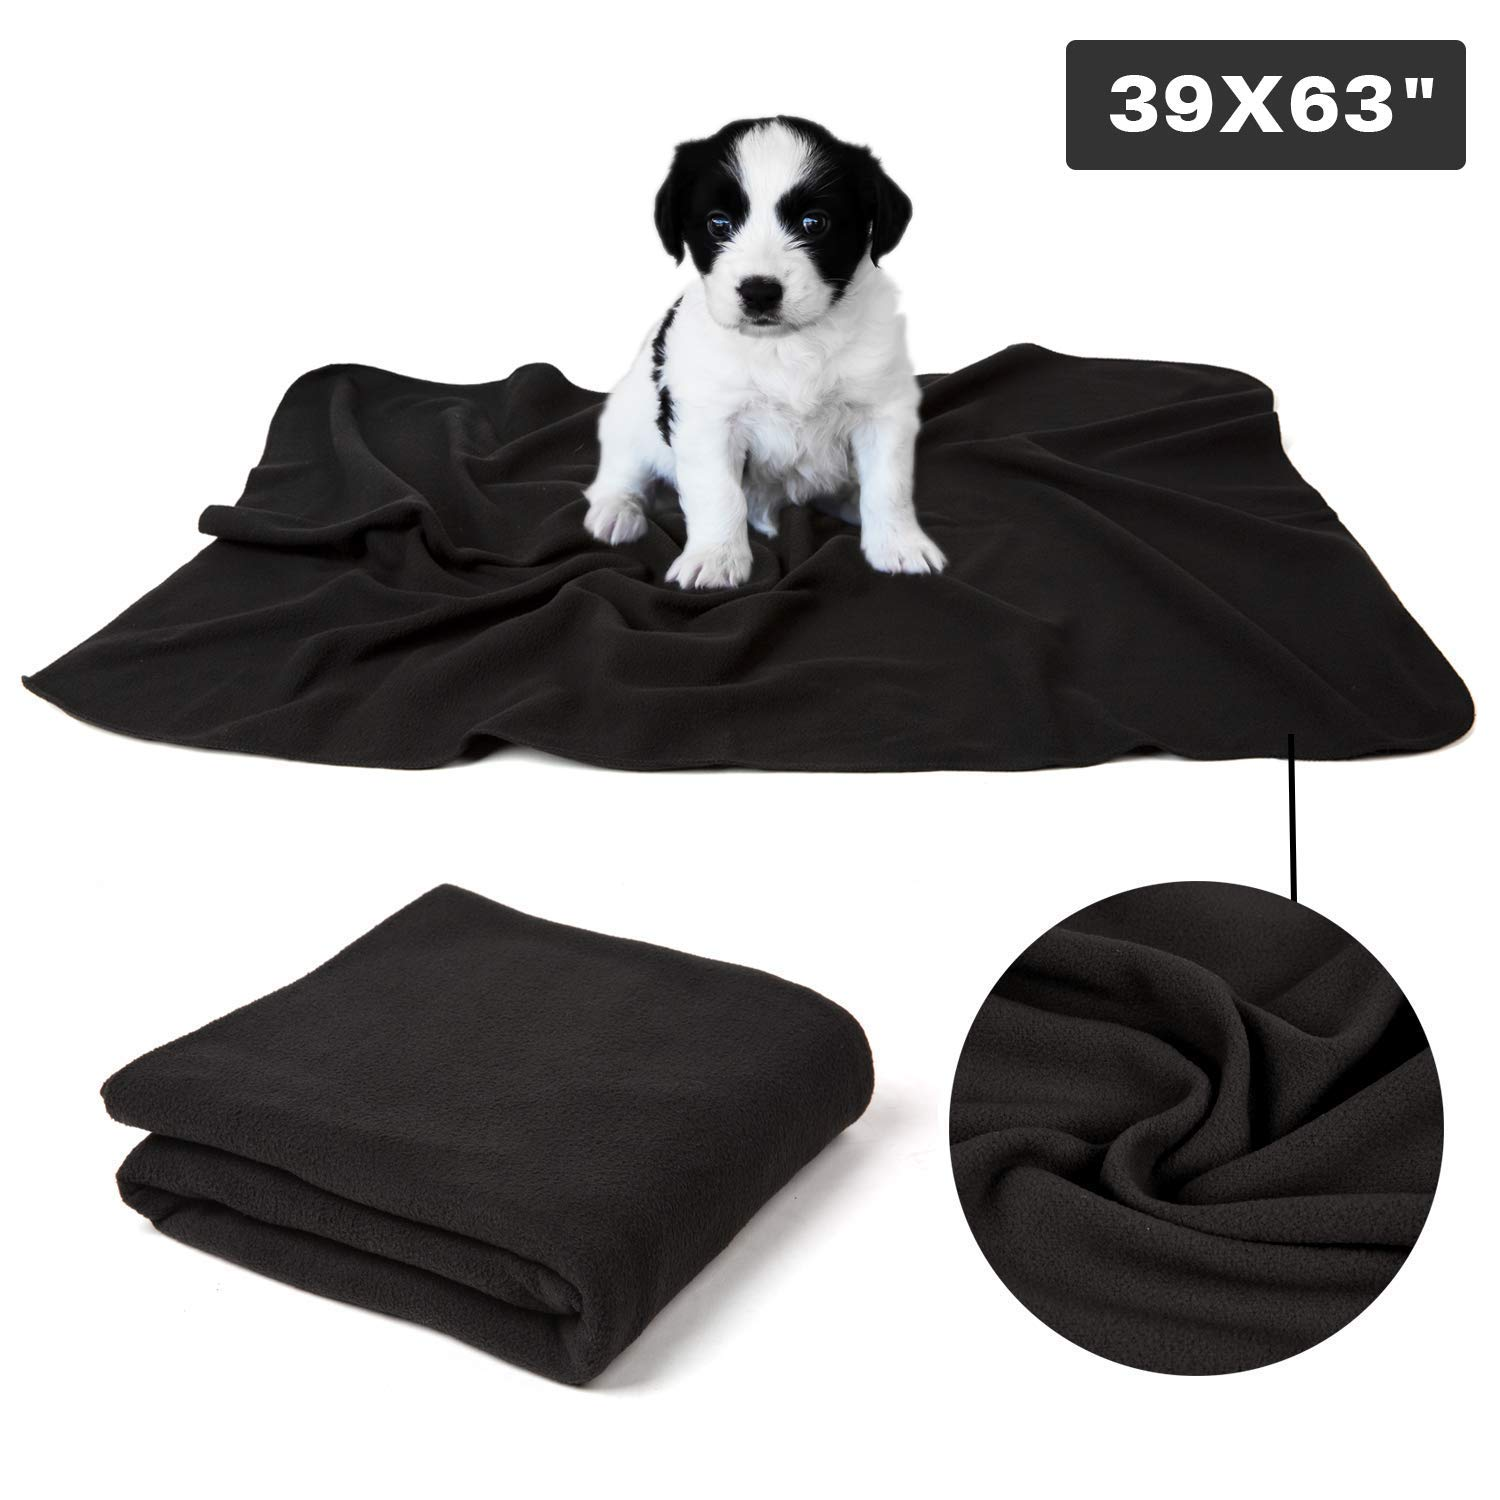 Black(39.4x63\ Puppy Dog Cat Fleece Warm Blanket, Pet Soft Sleep Bed Cover for Kitten Small Animals, Black